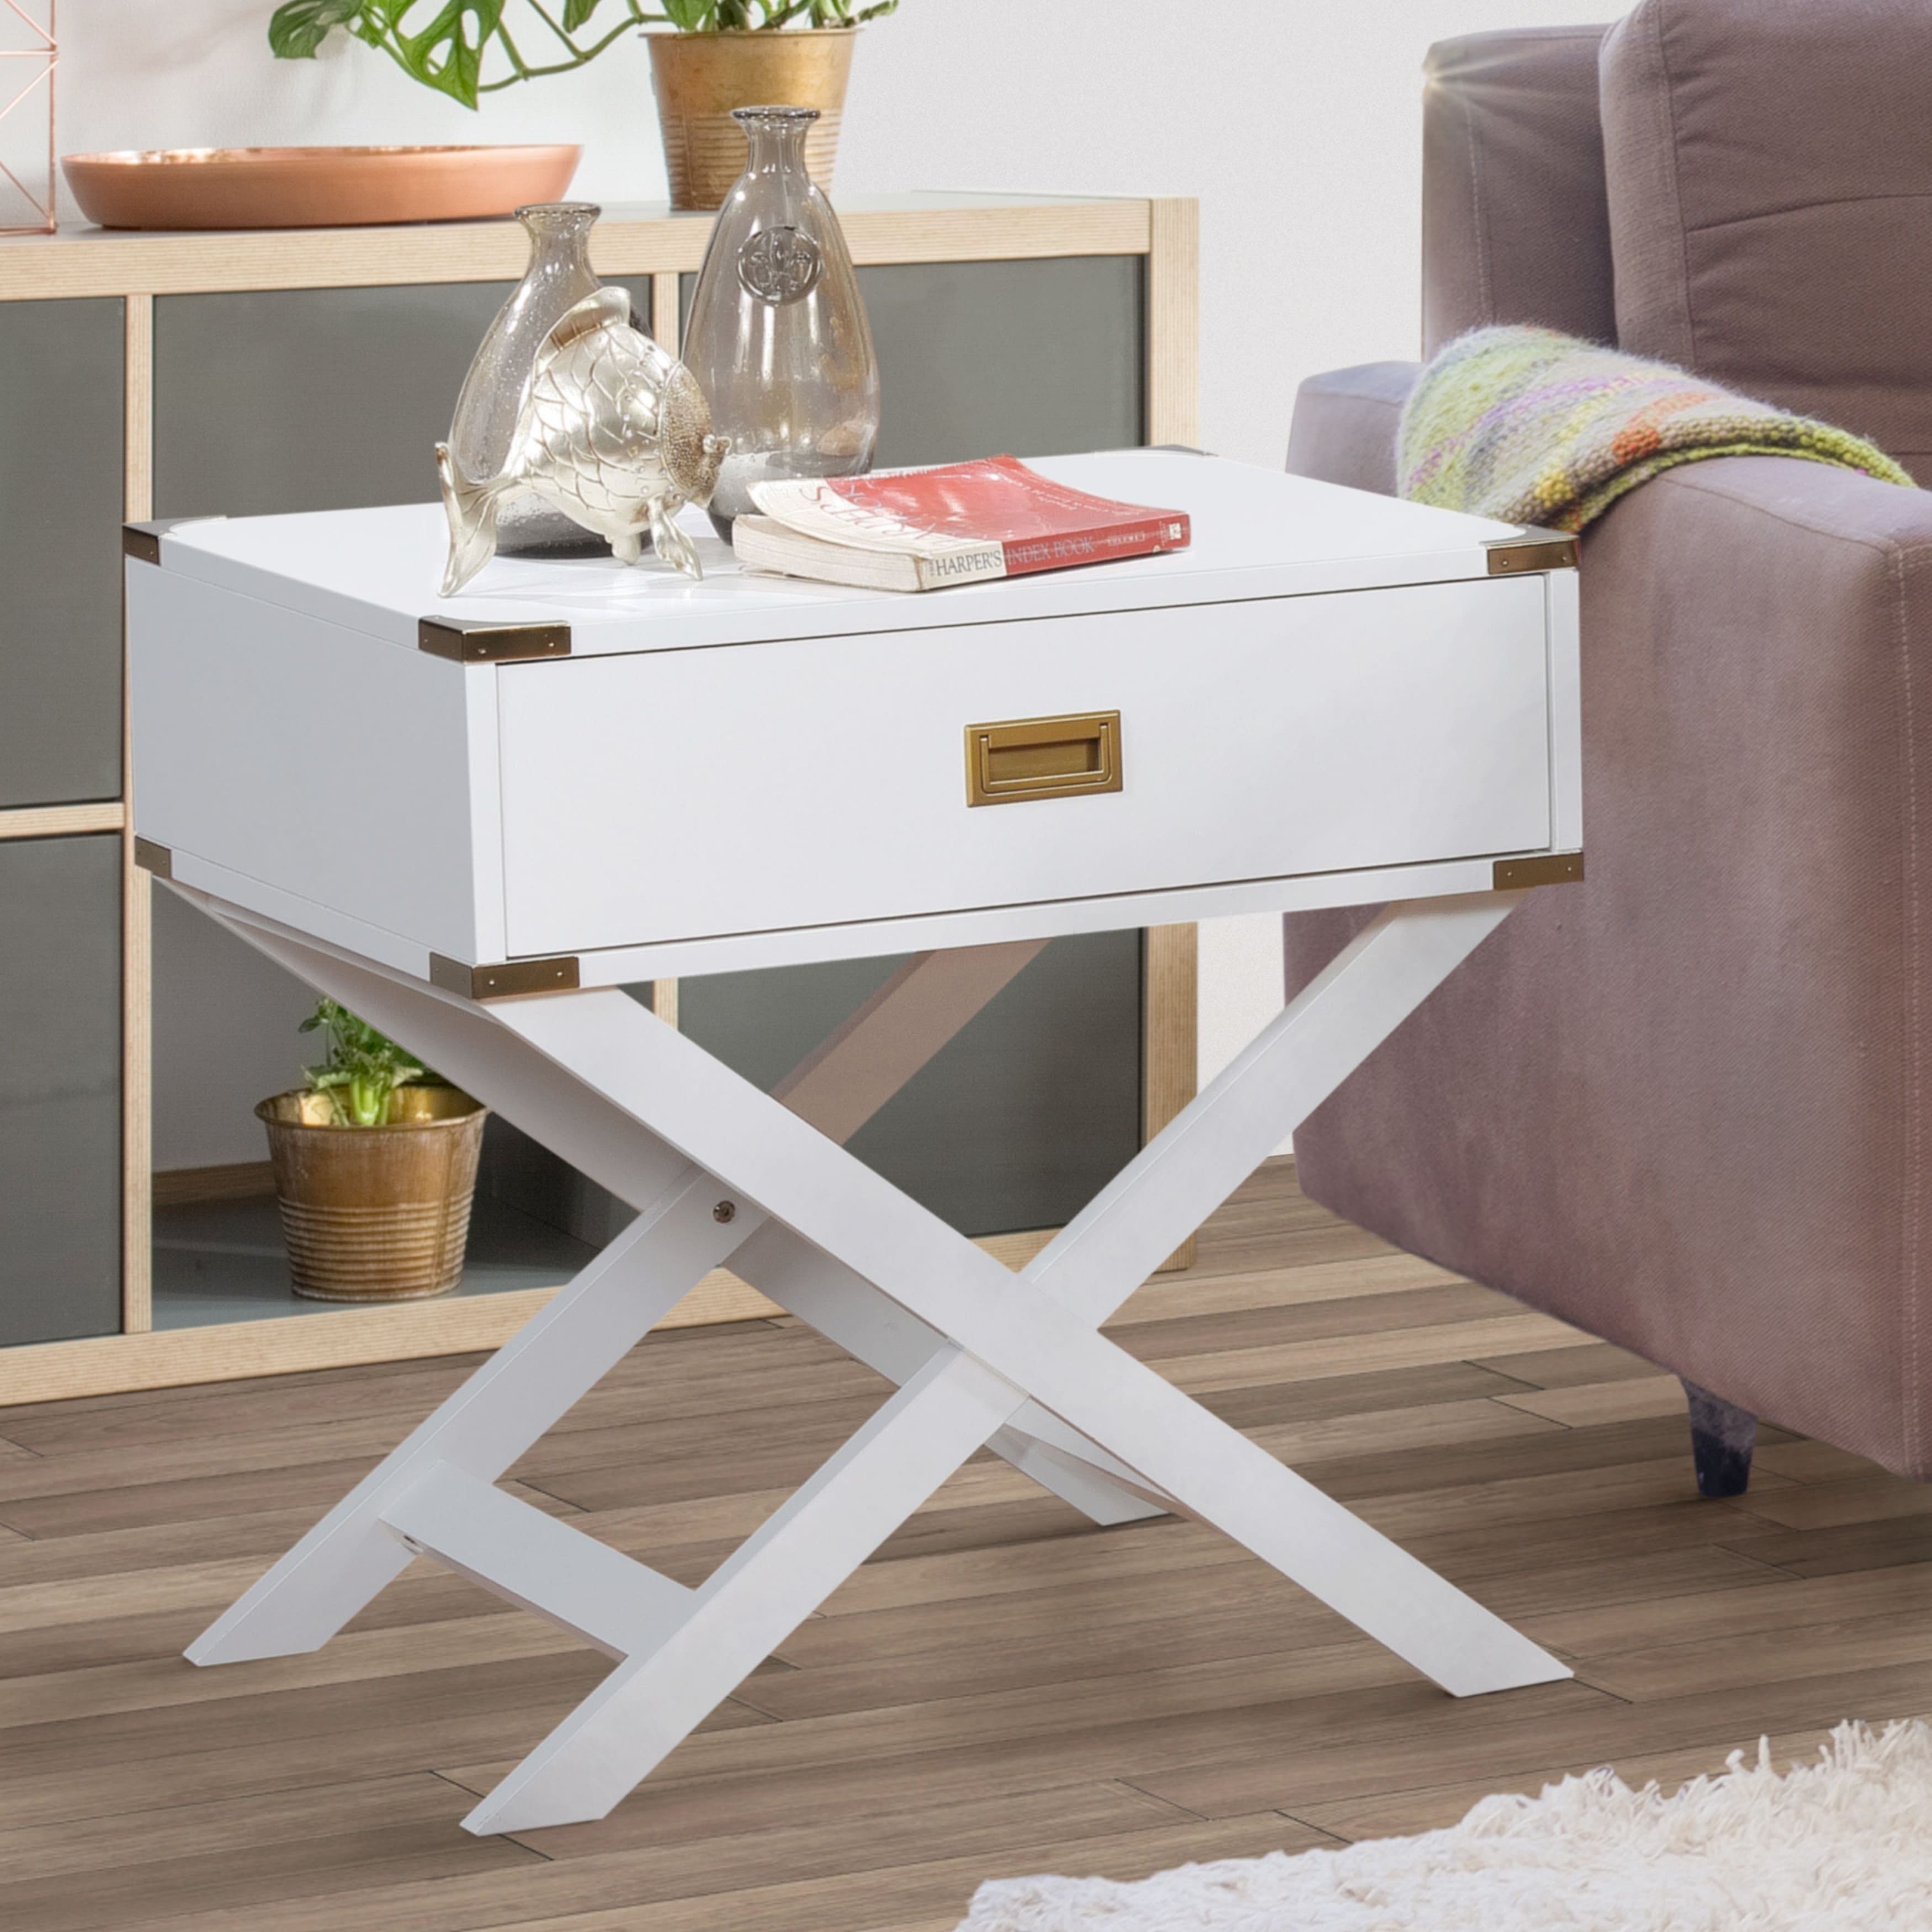 furniture america contemporary single drawer end table room essentials trestle accent white bedside lockers gold mats bathroom caddy flip top matching tables and chest drawers